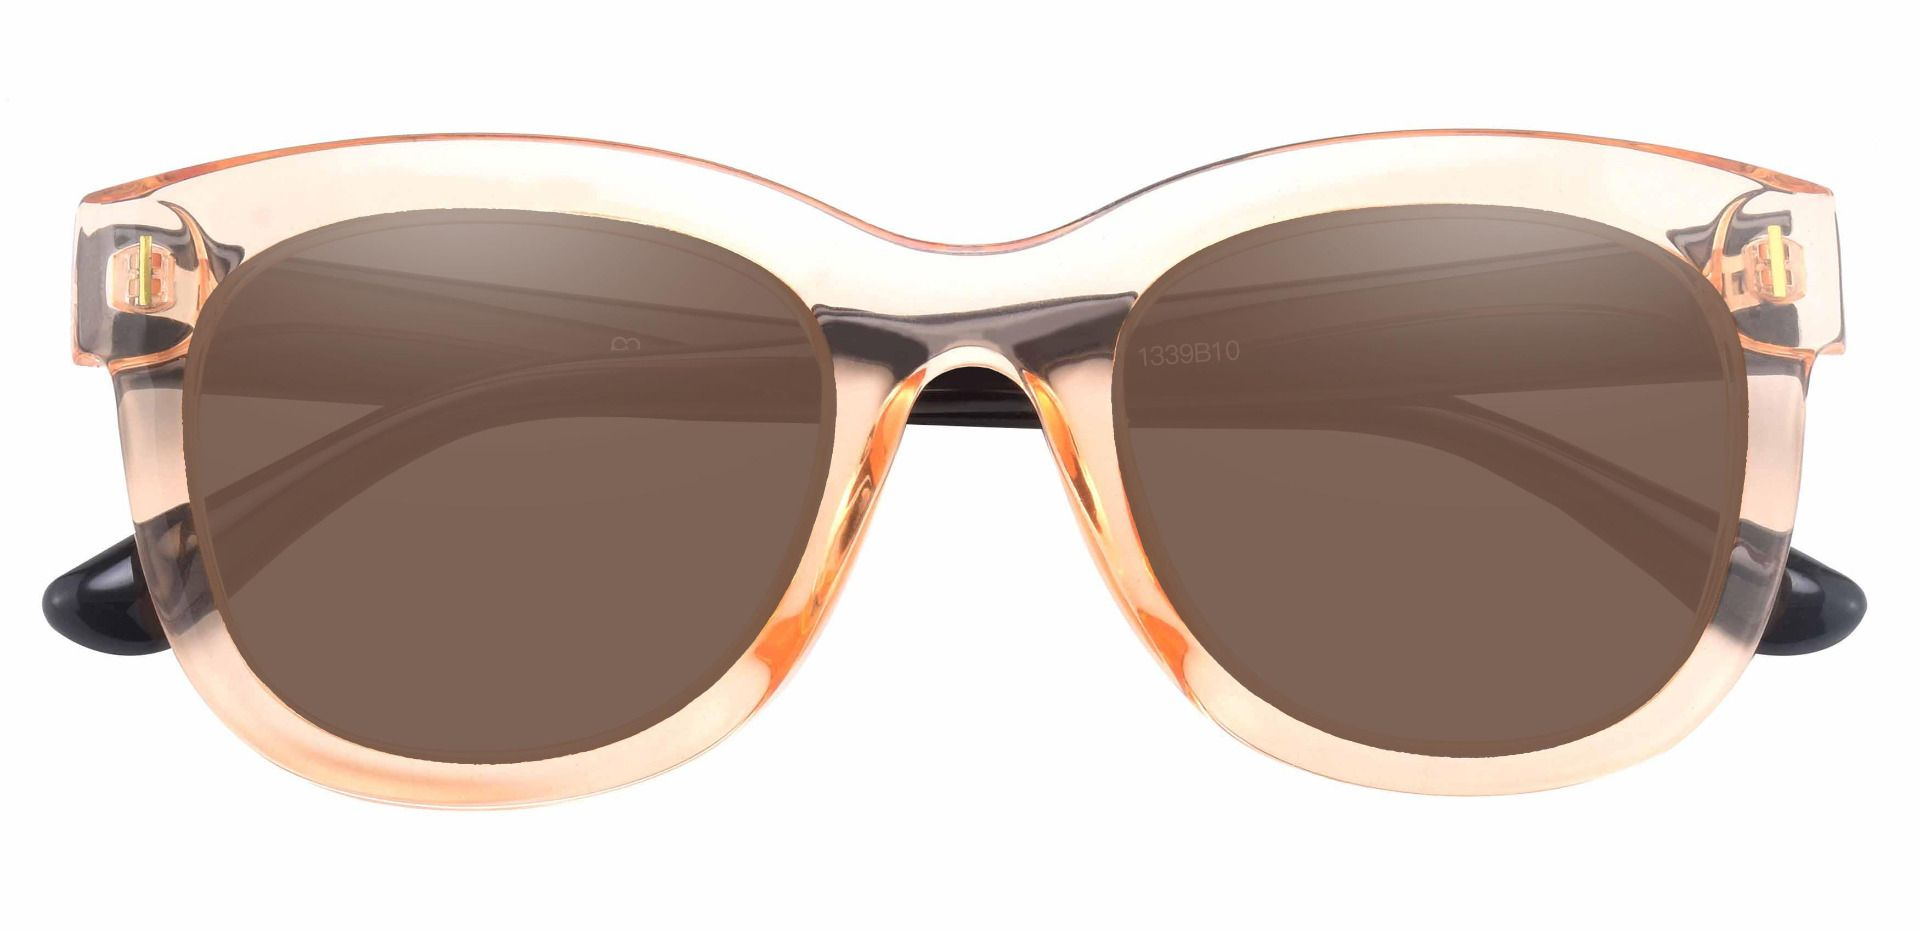 Saratoga Square Reading Sunglasses - Brown Frame With Brown Lenses